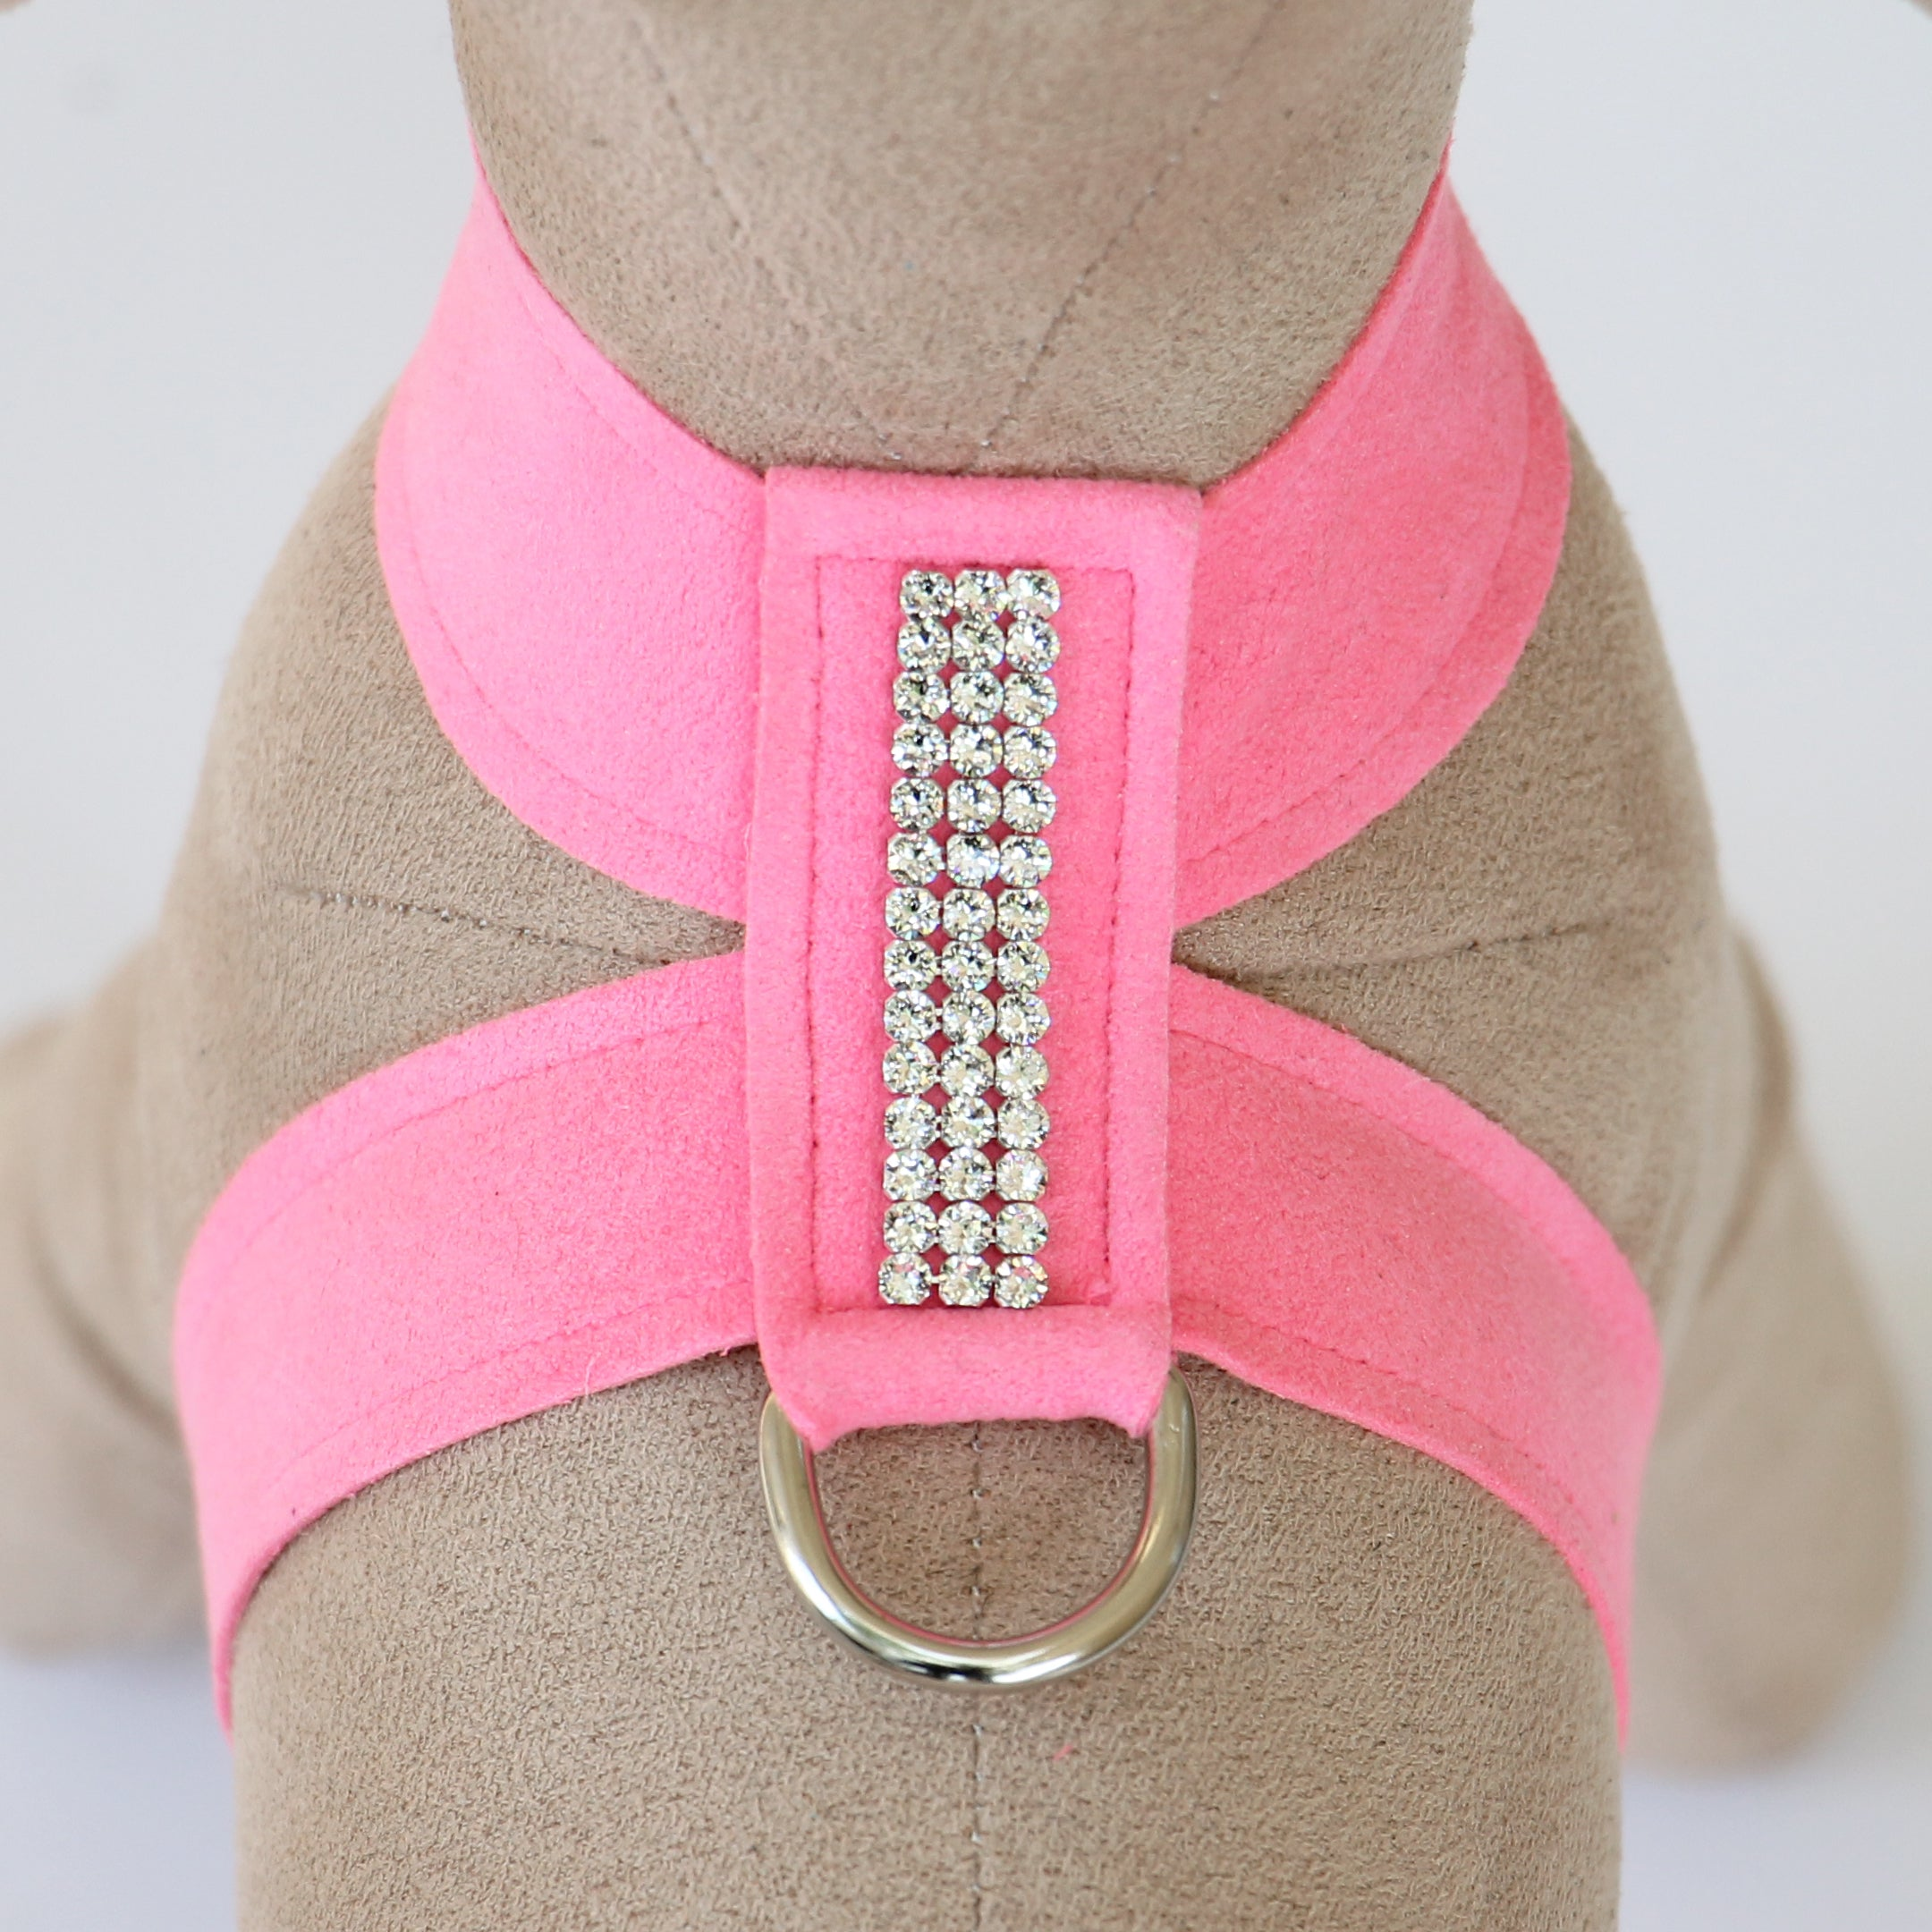 Giltmore 3-Row Crystal Pet Harness: Perfect Pink